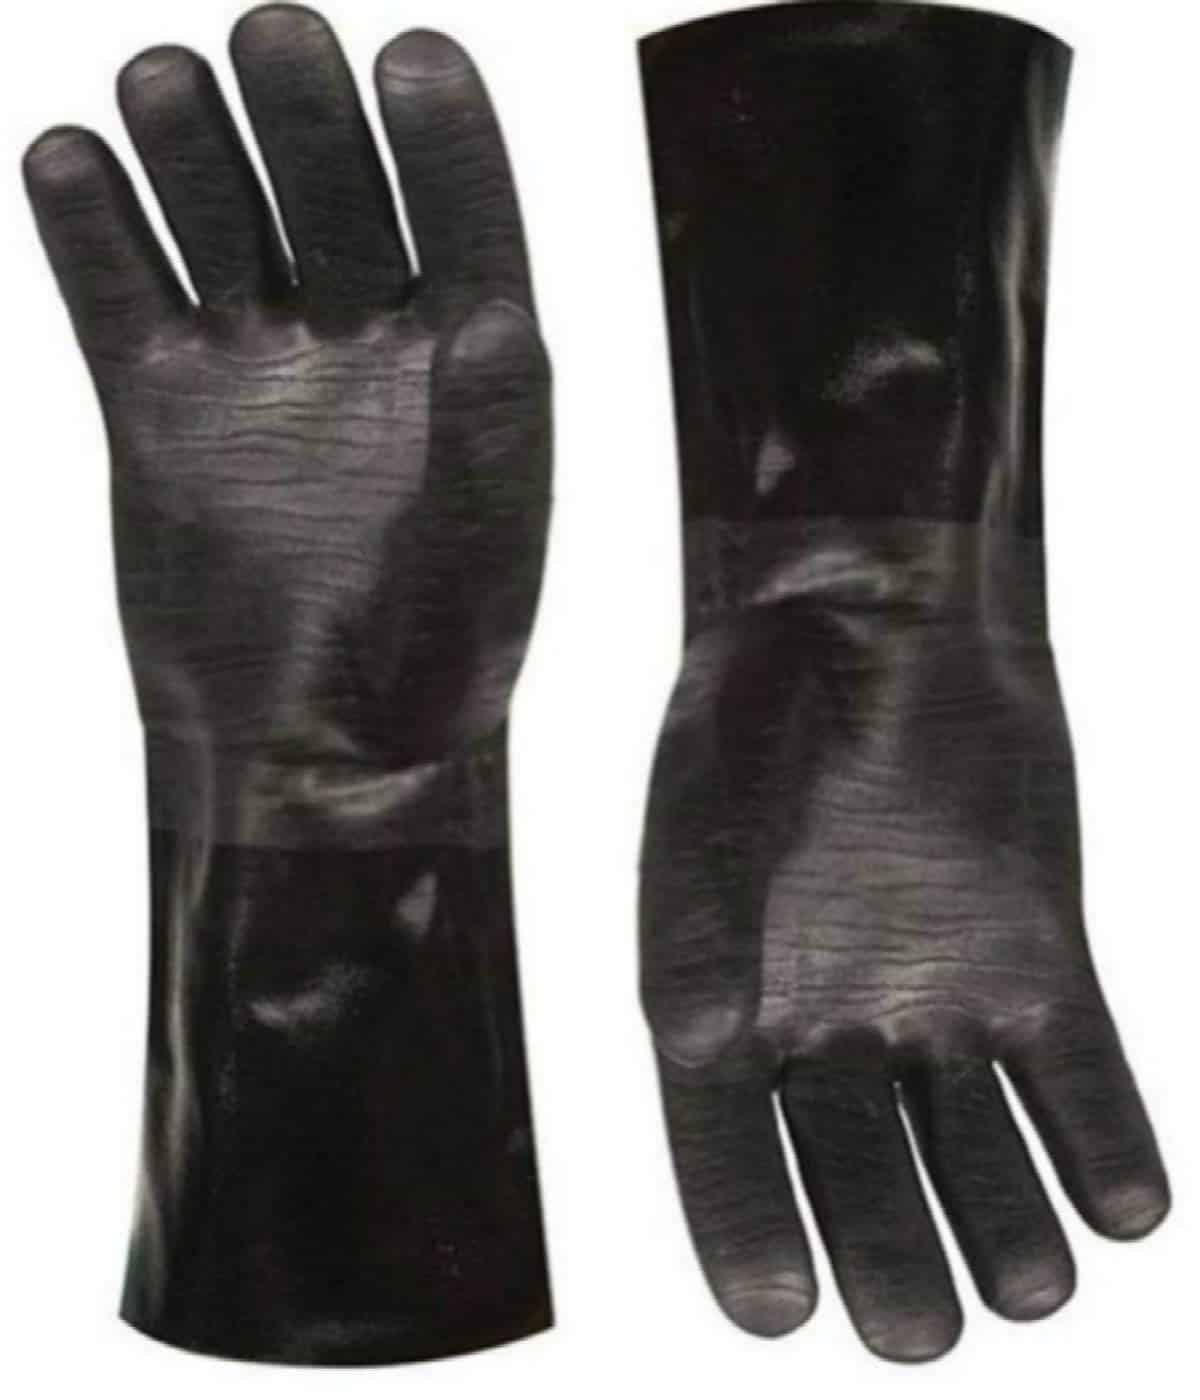 Insulated waterproof / oil and heat resistant BBQ, smoker, grill, and cooking gloves